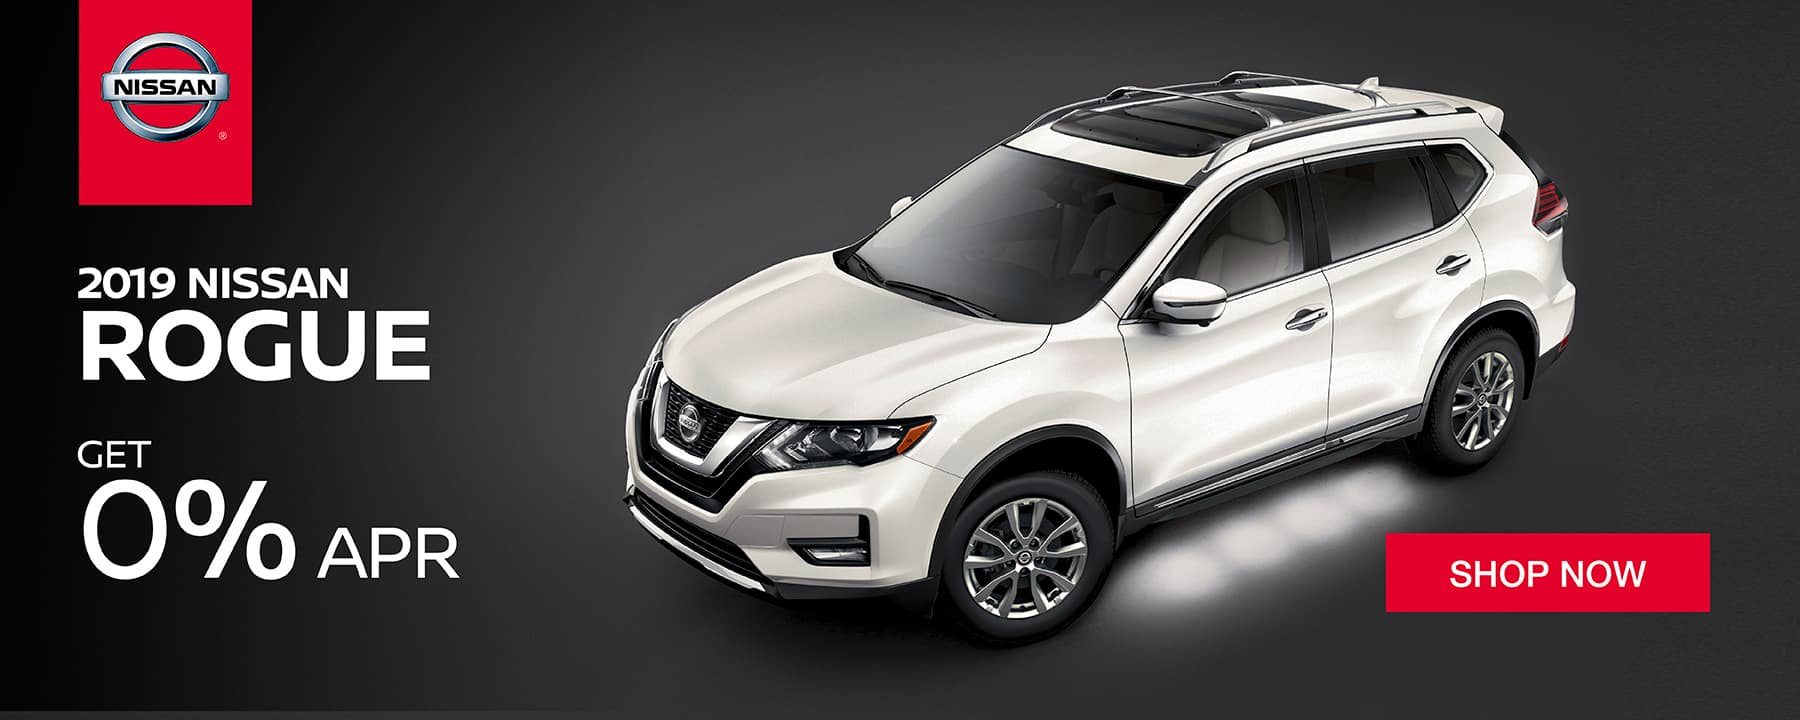 Get 0% APR Financing on the 2019 Nissan Rogue available NOW at Berman Nissan of Chicago!